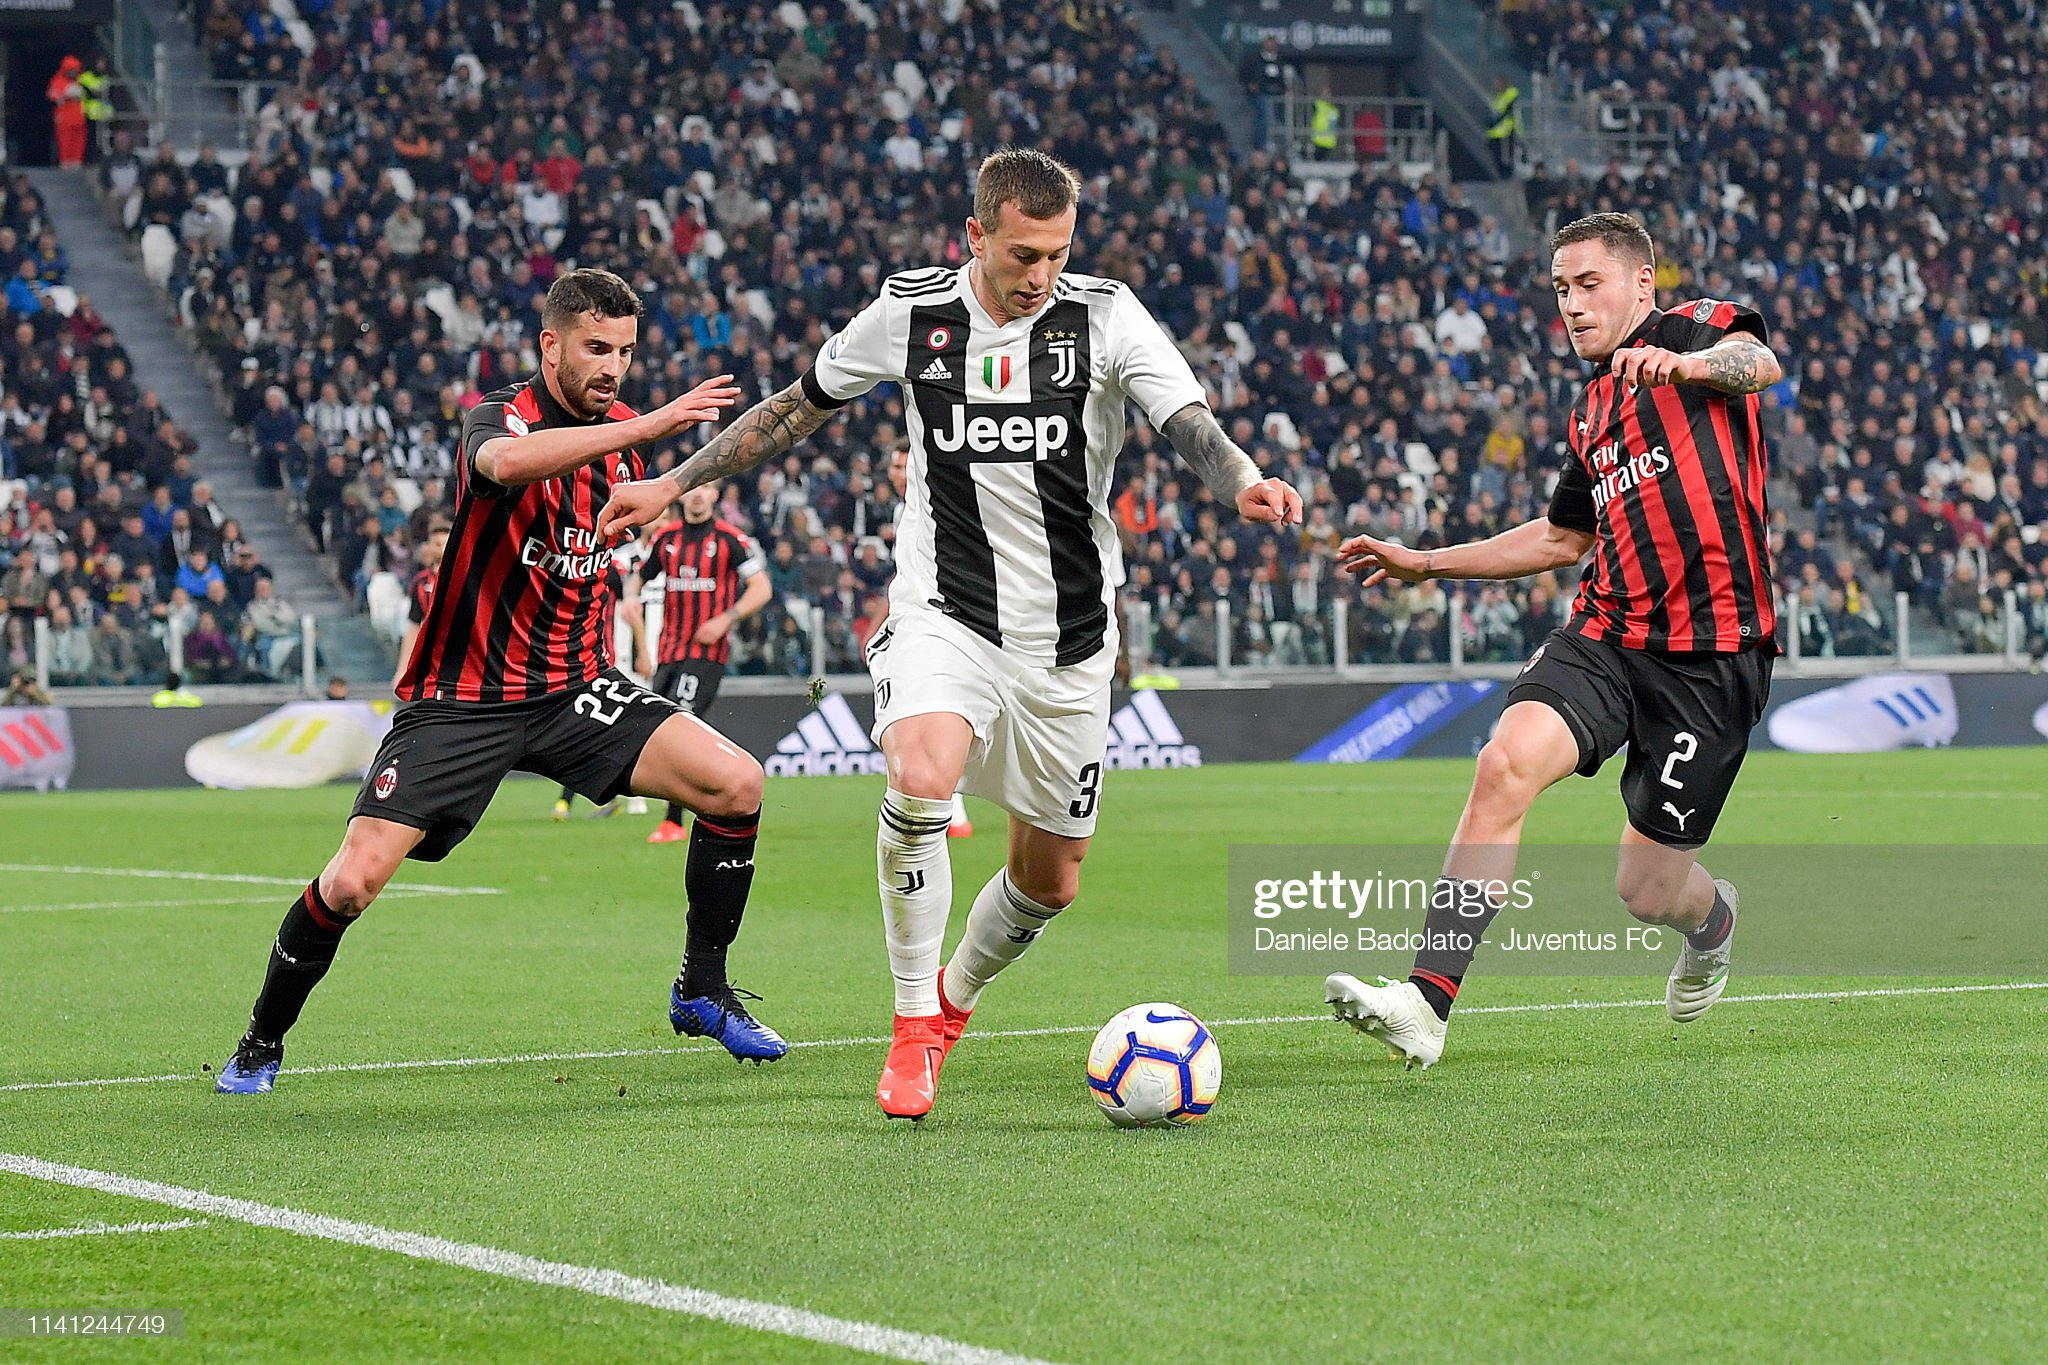 Juventus v AC Milan preview, prediction and odds